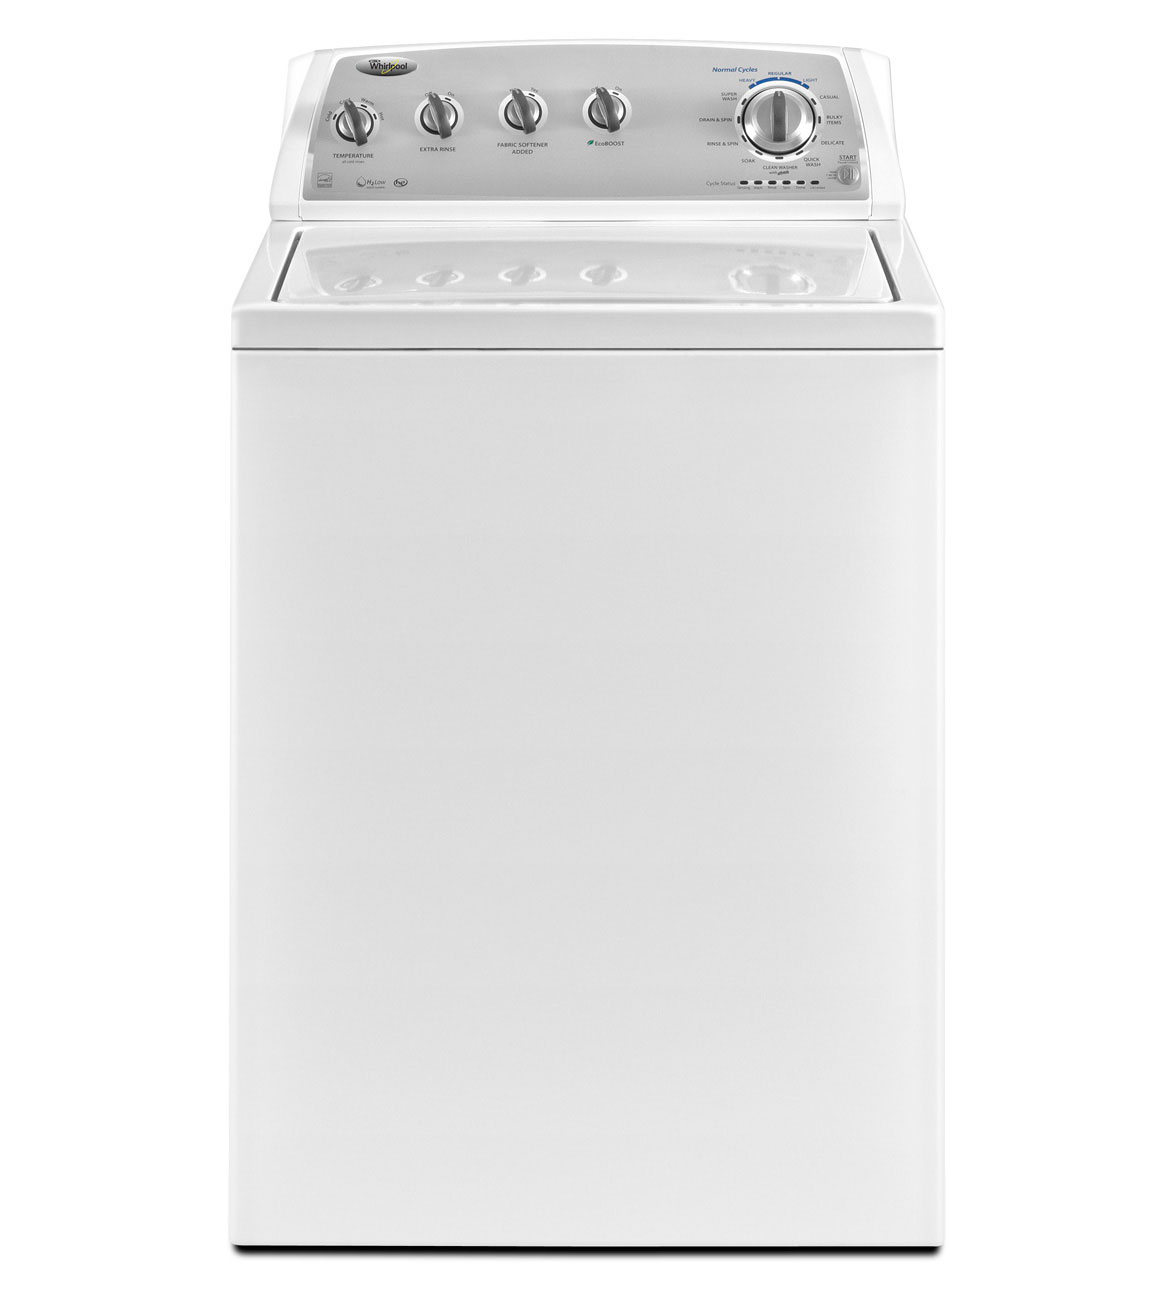 Whirlpool 3.6 cu ft High-Efficiency Top-Load Washer (White) ENERGY STAR (Model: WTW4950XW)